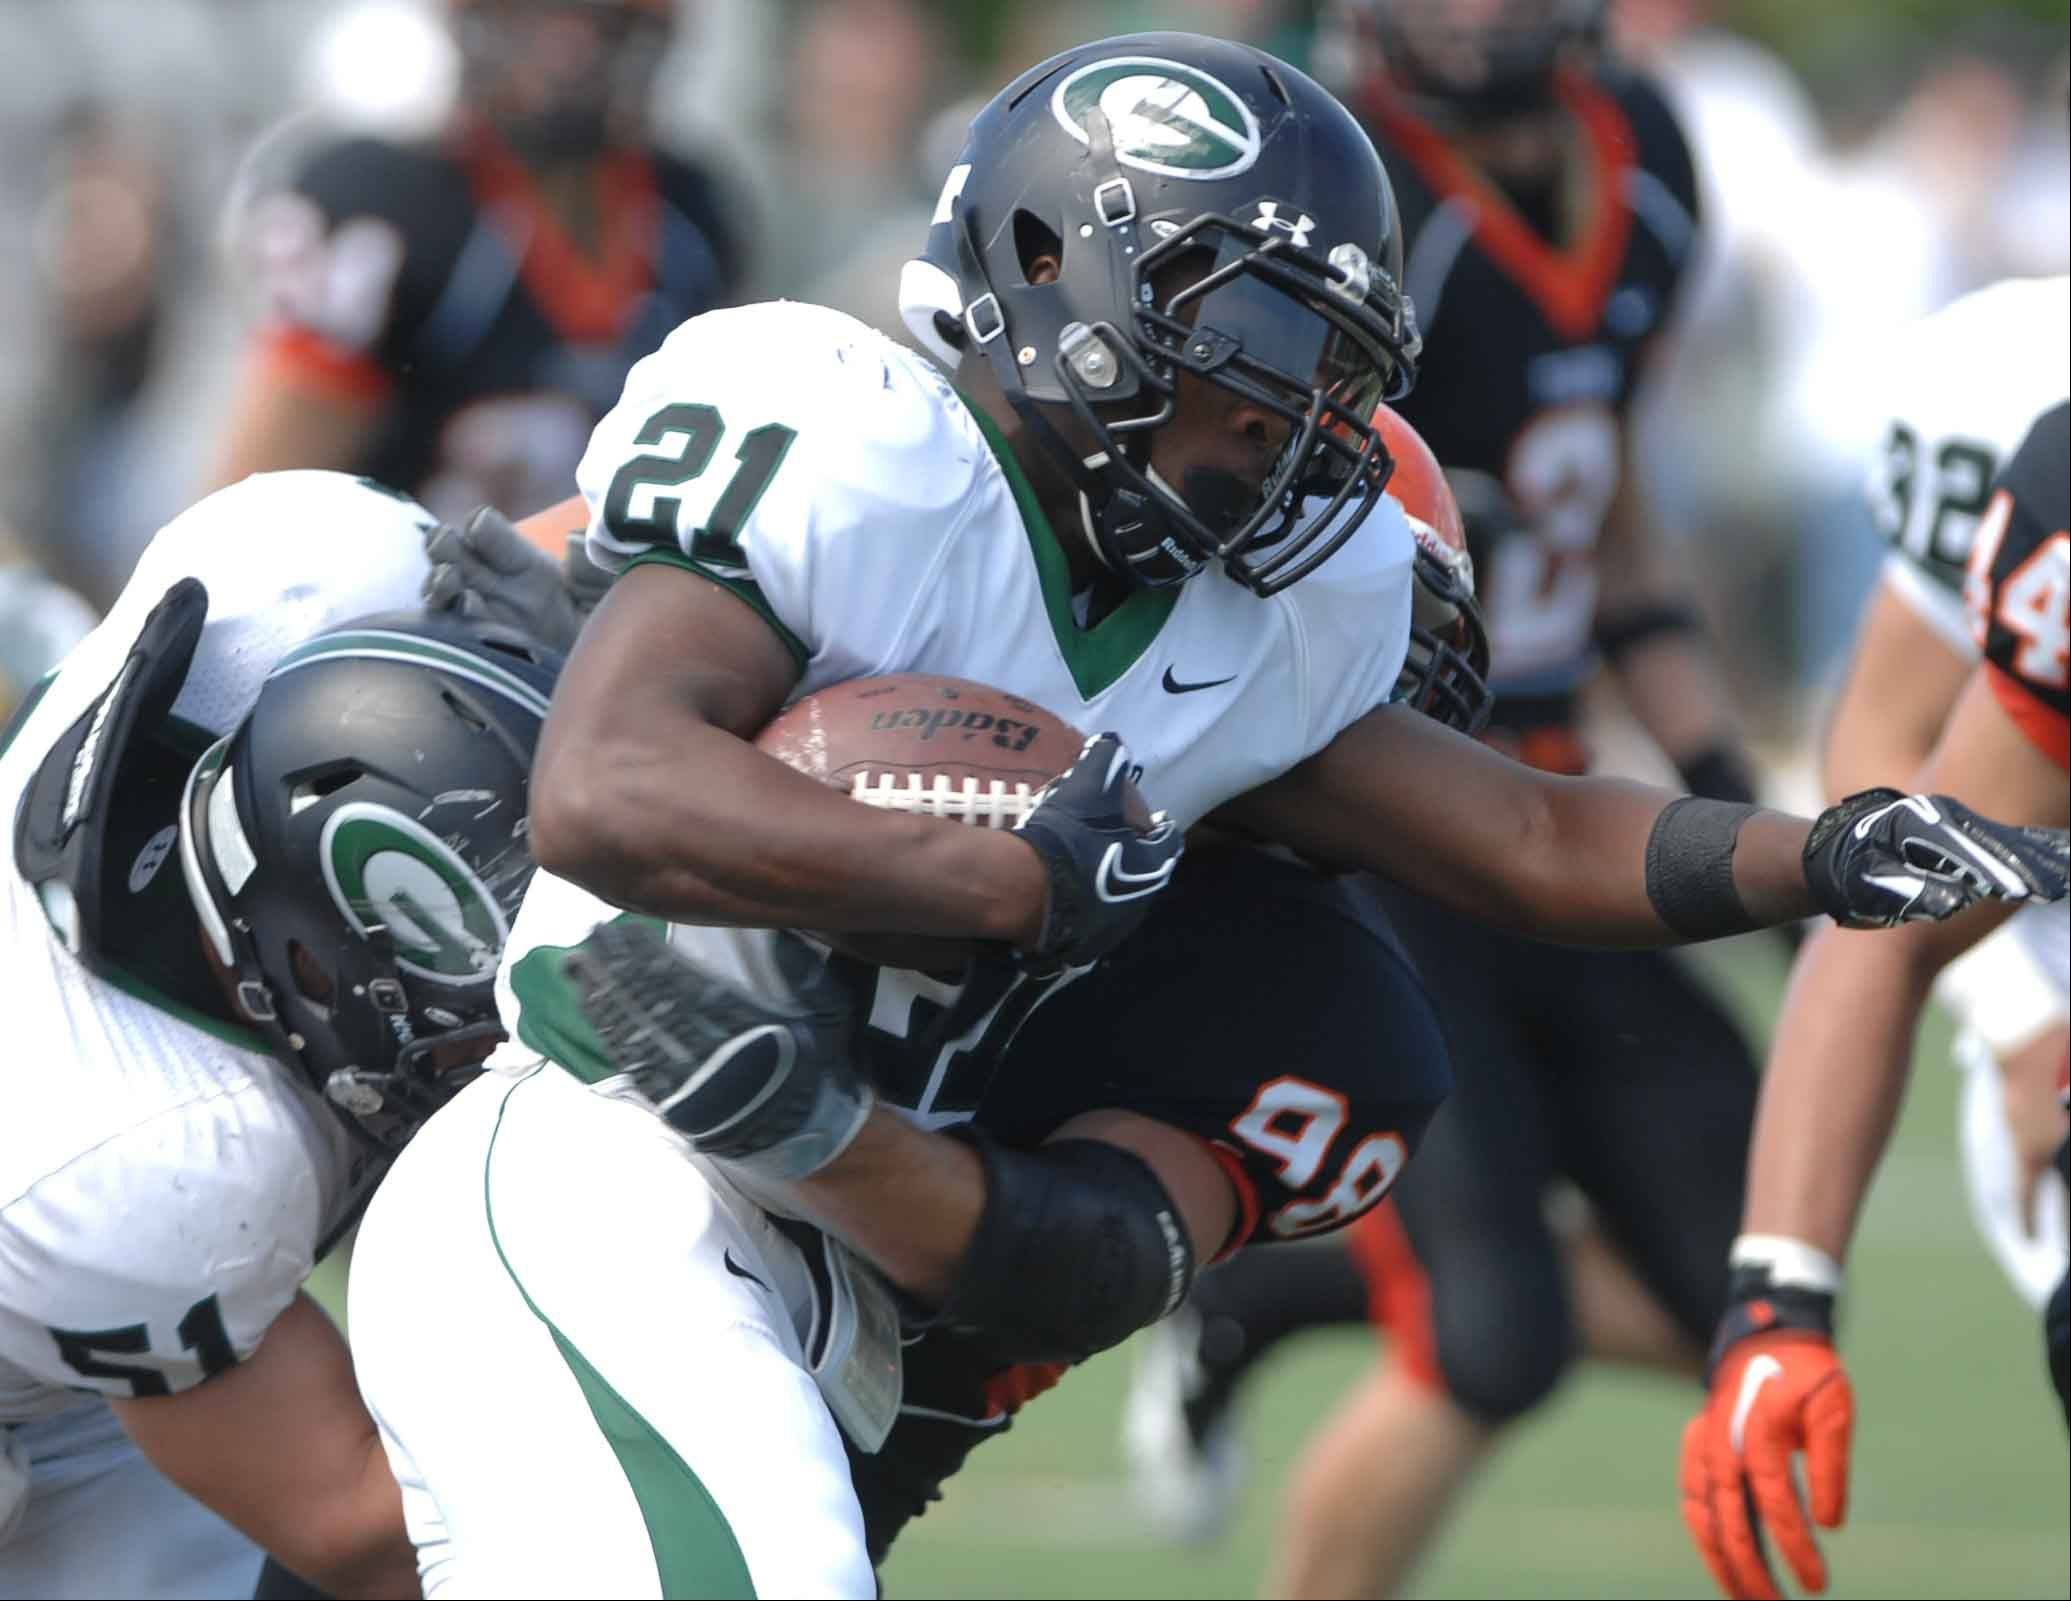 Deon Dumas of Glen Ellyn moves the ball during the Glenbard West and Wheaton Warrenville South game Sunday.